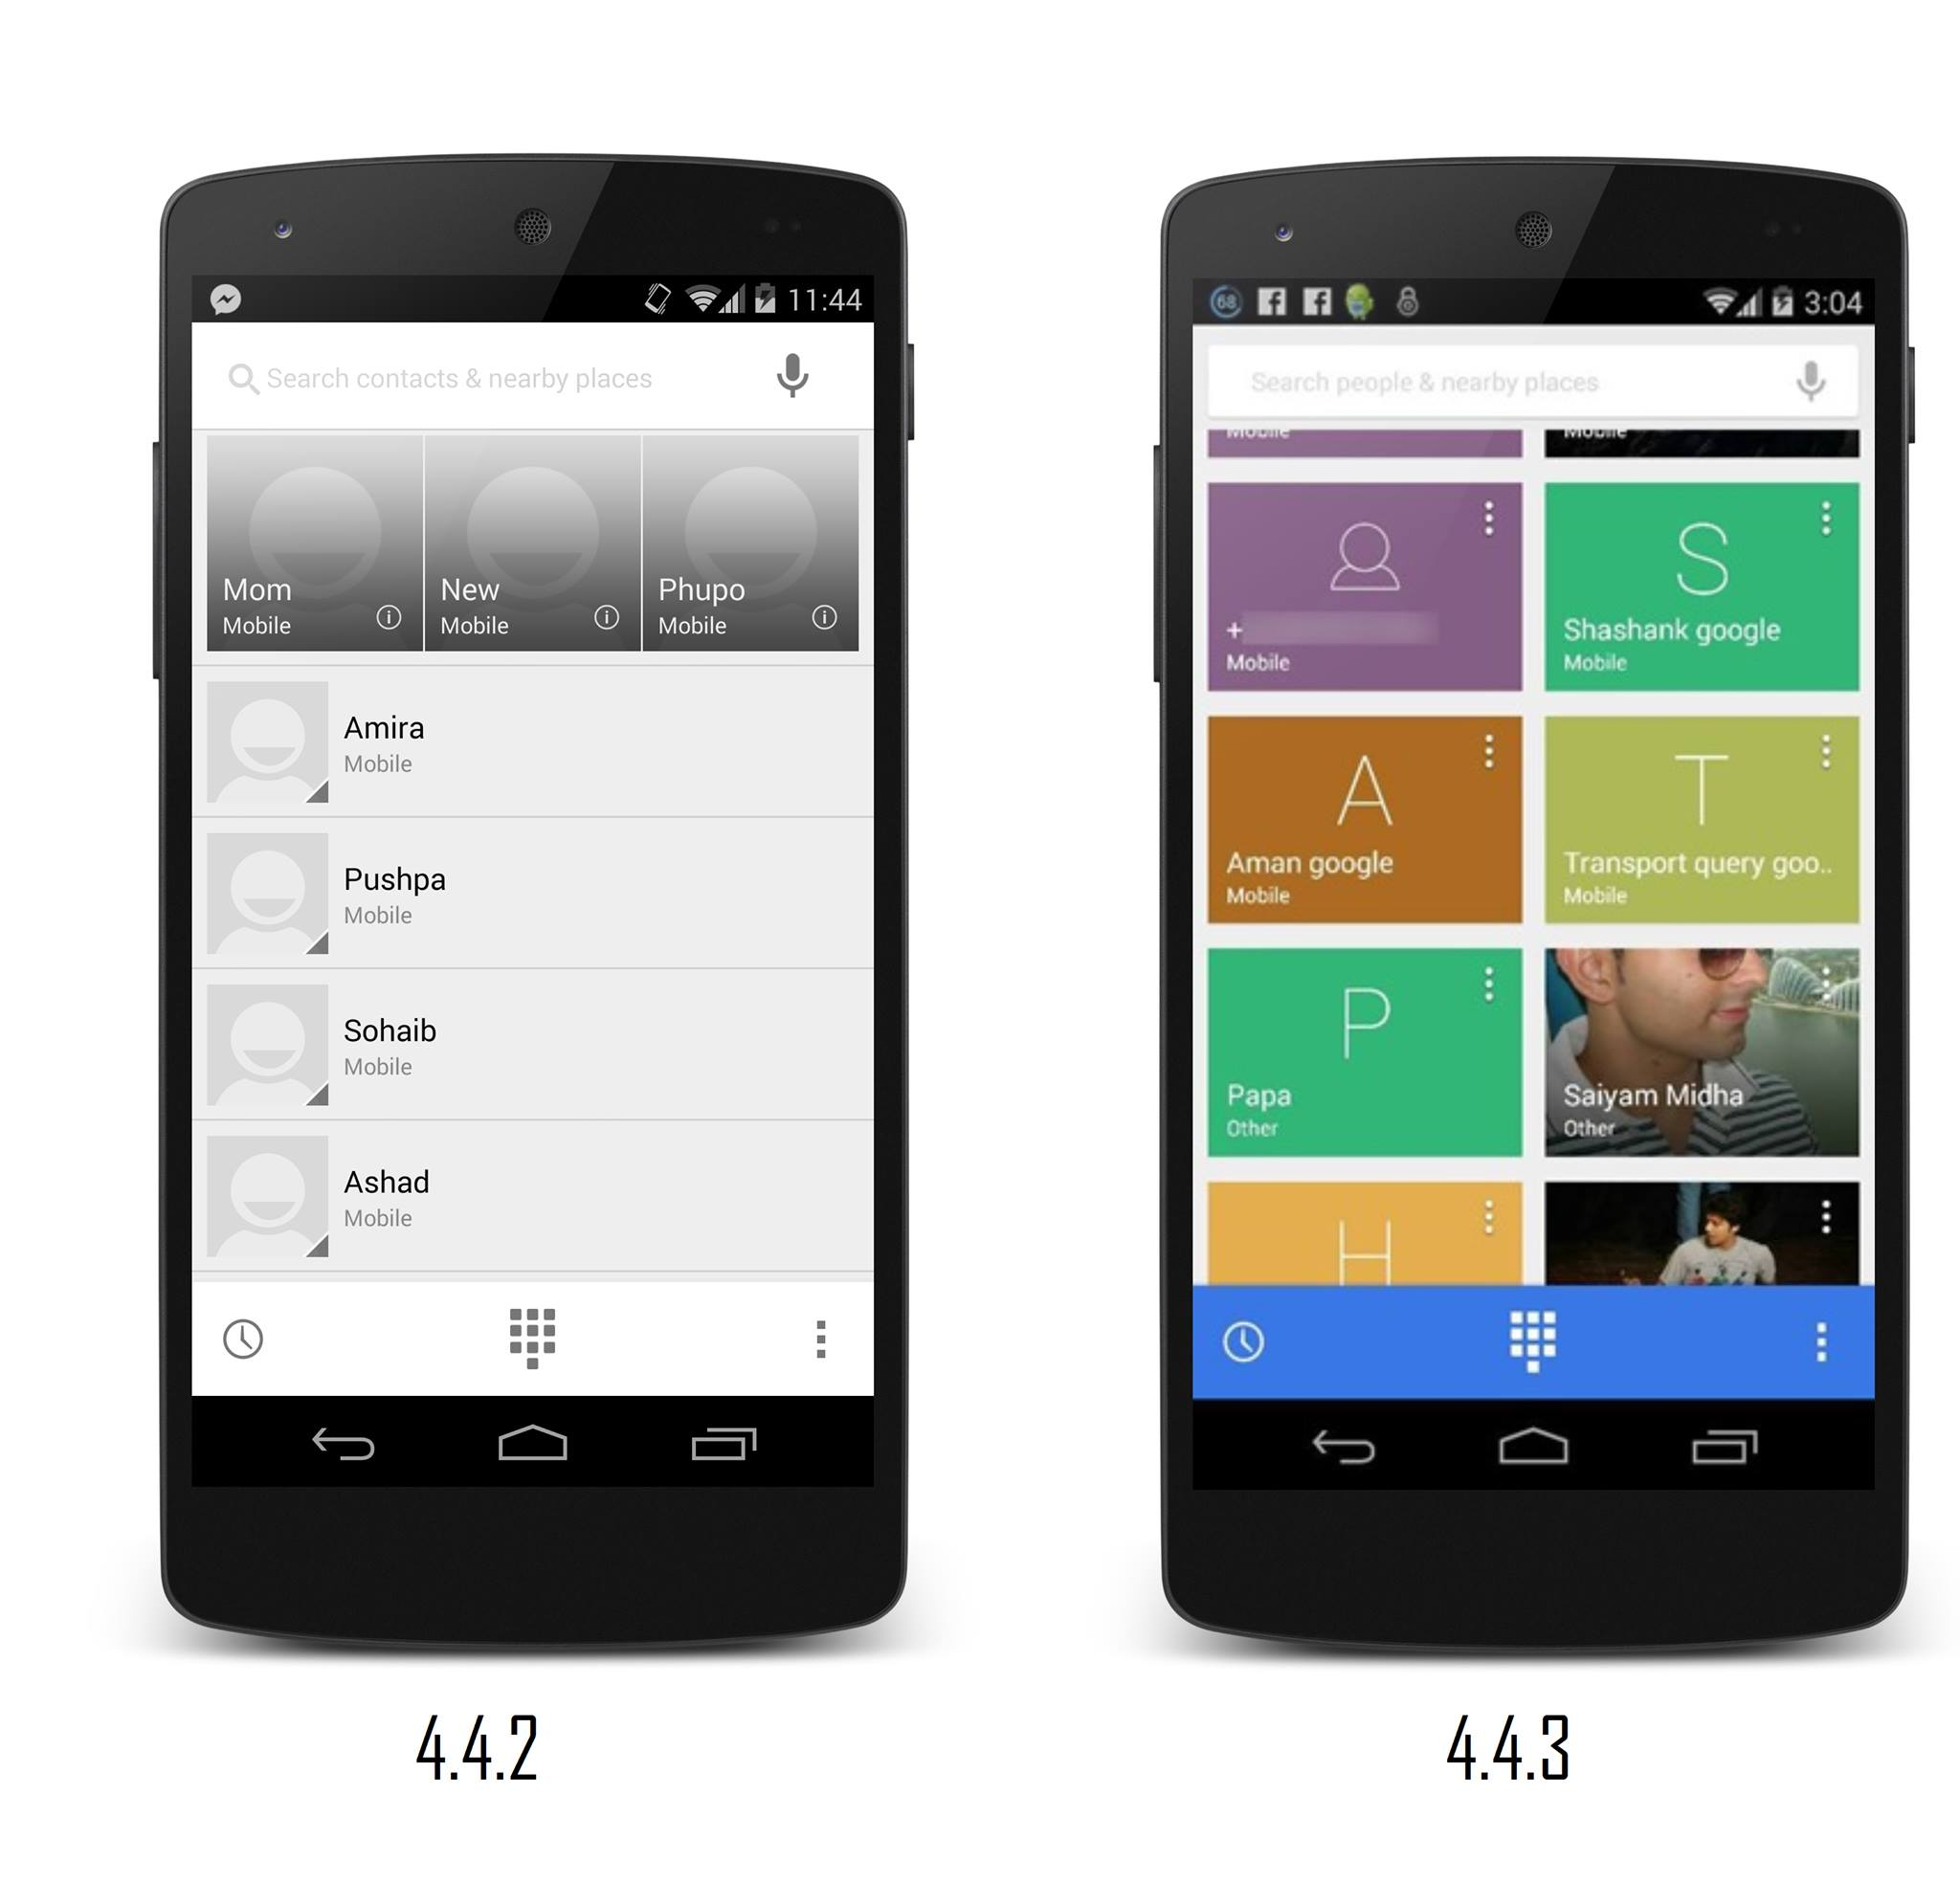 Roll out for other Nexus devices is expected to start in couple of days with Google Play Editions soon to follow.